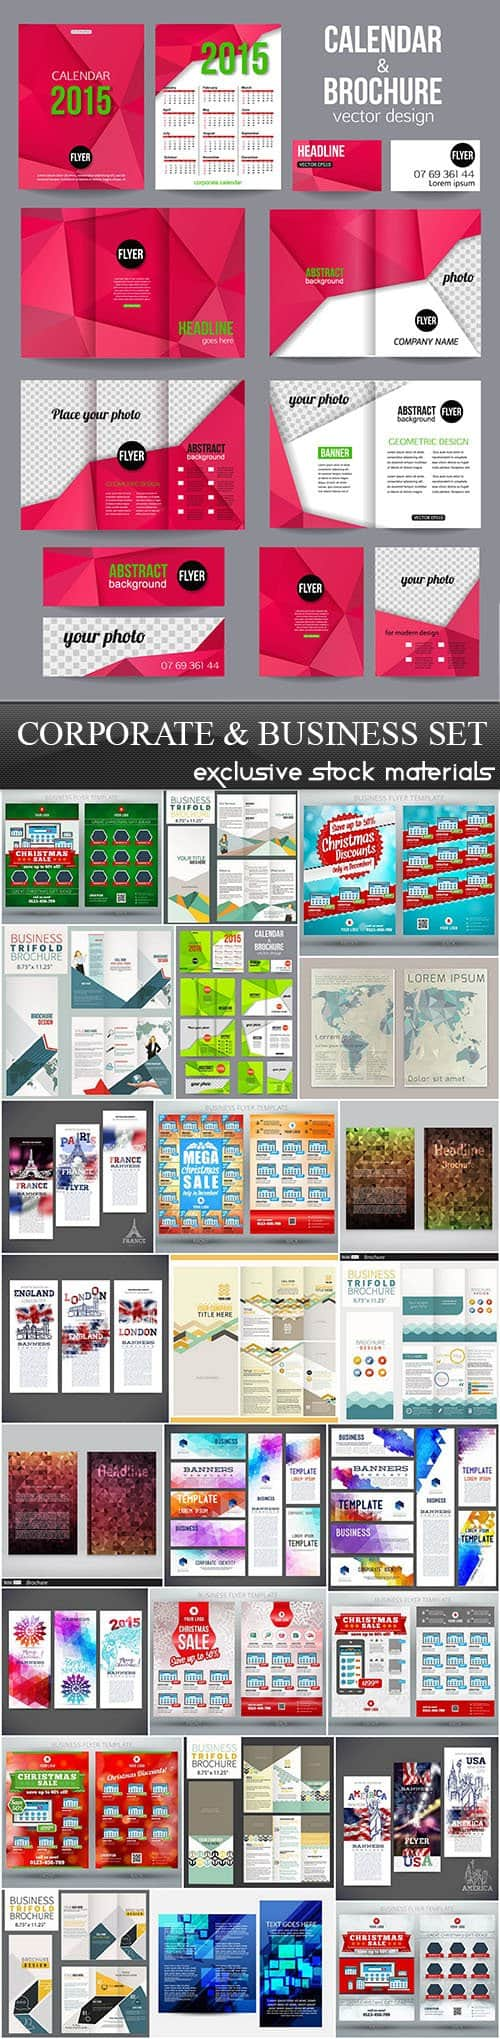 Corporate & Business Set, 25xEPS